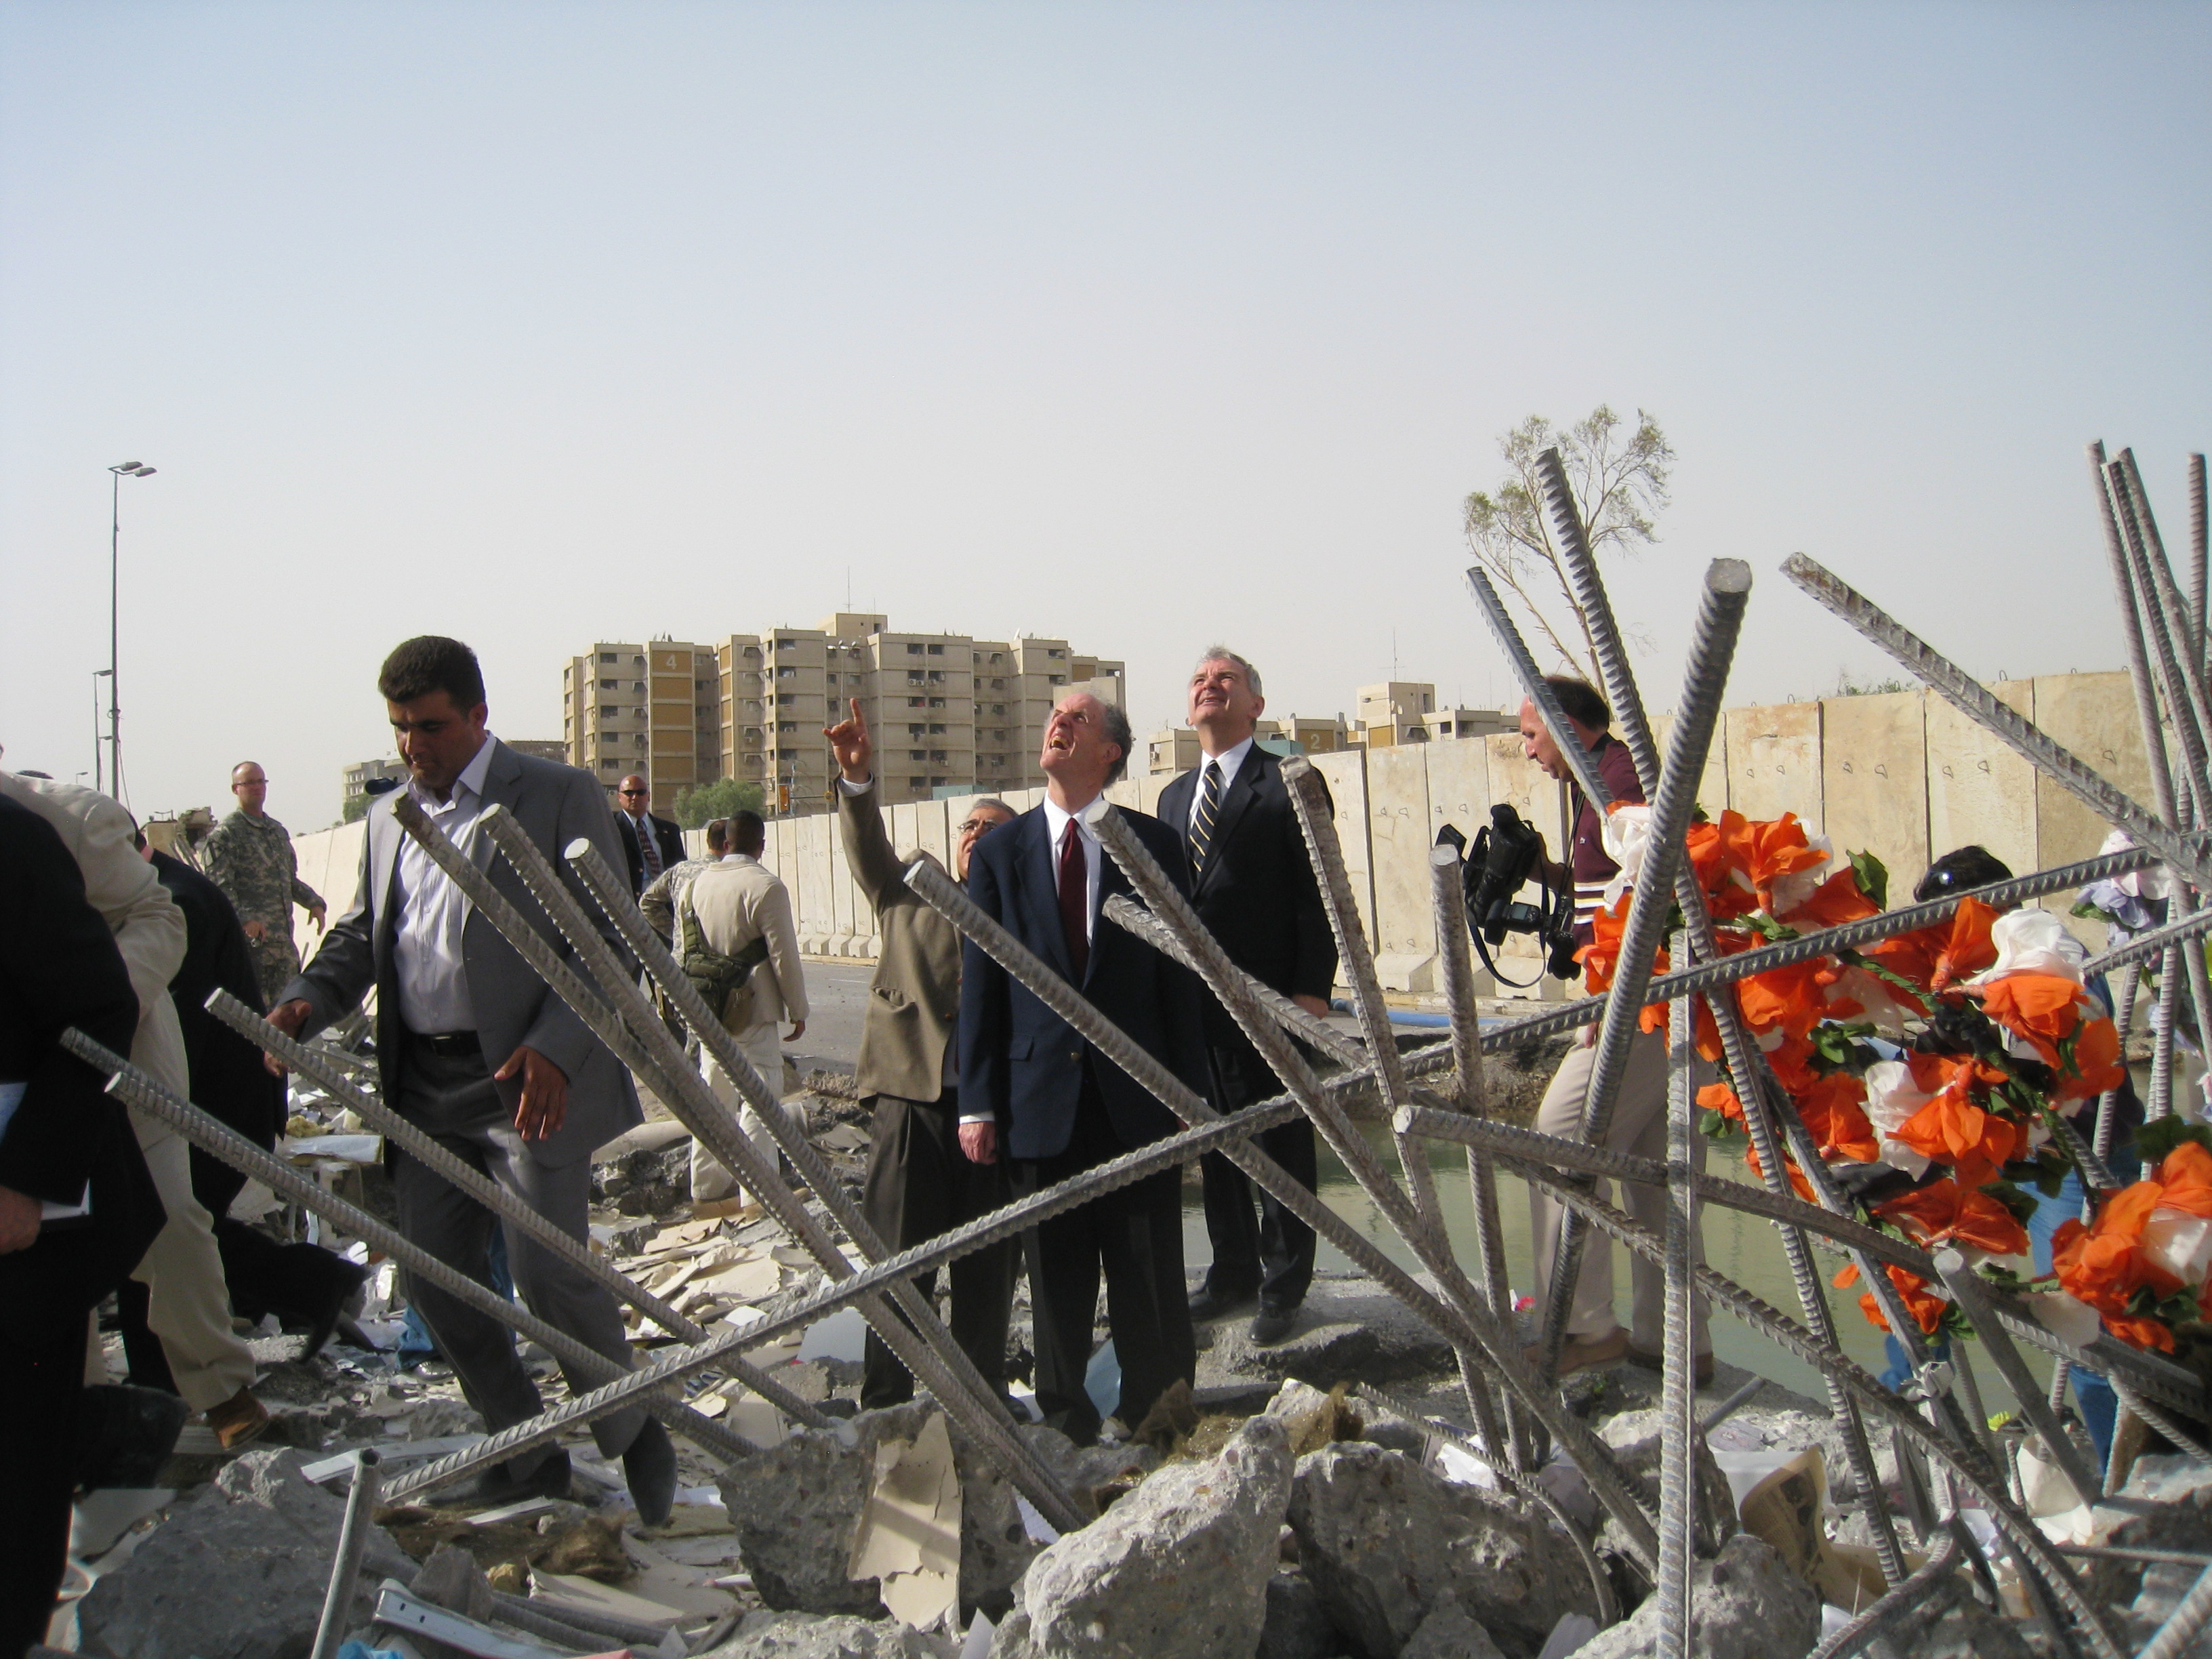 Photograph of Baghdad bombings, 2009 August